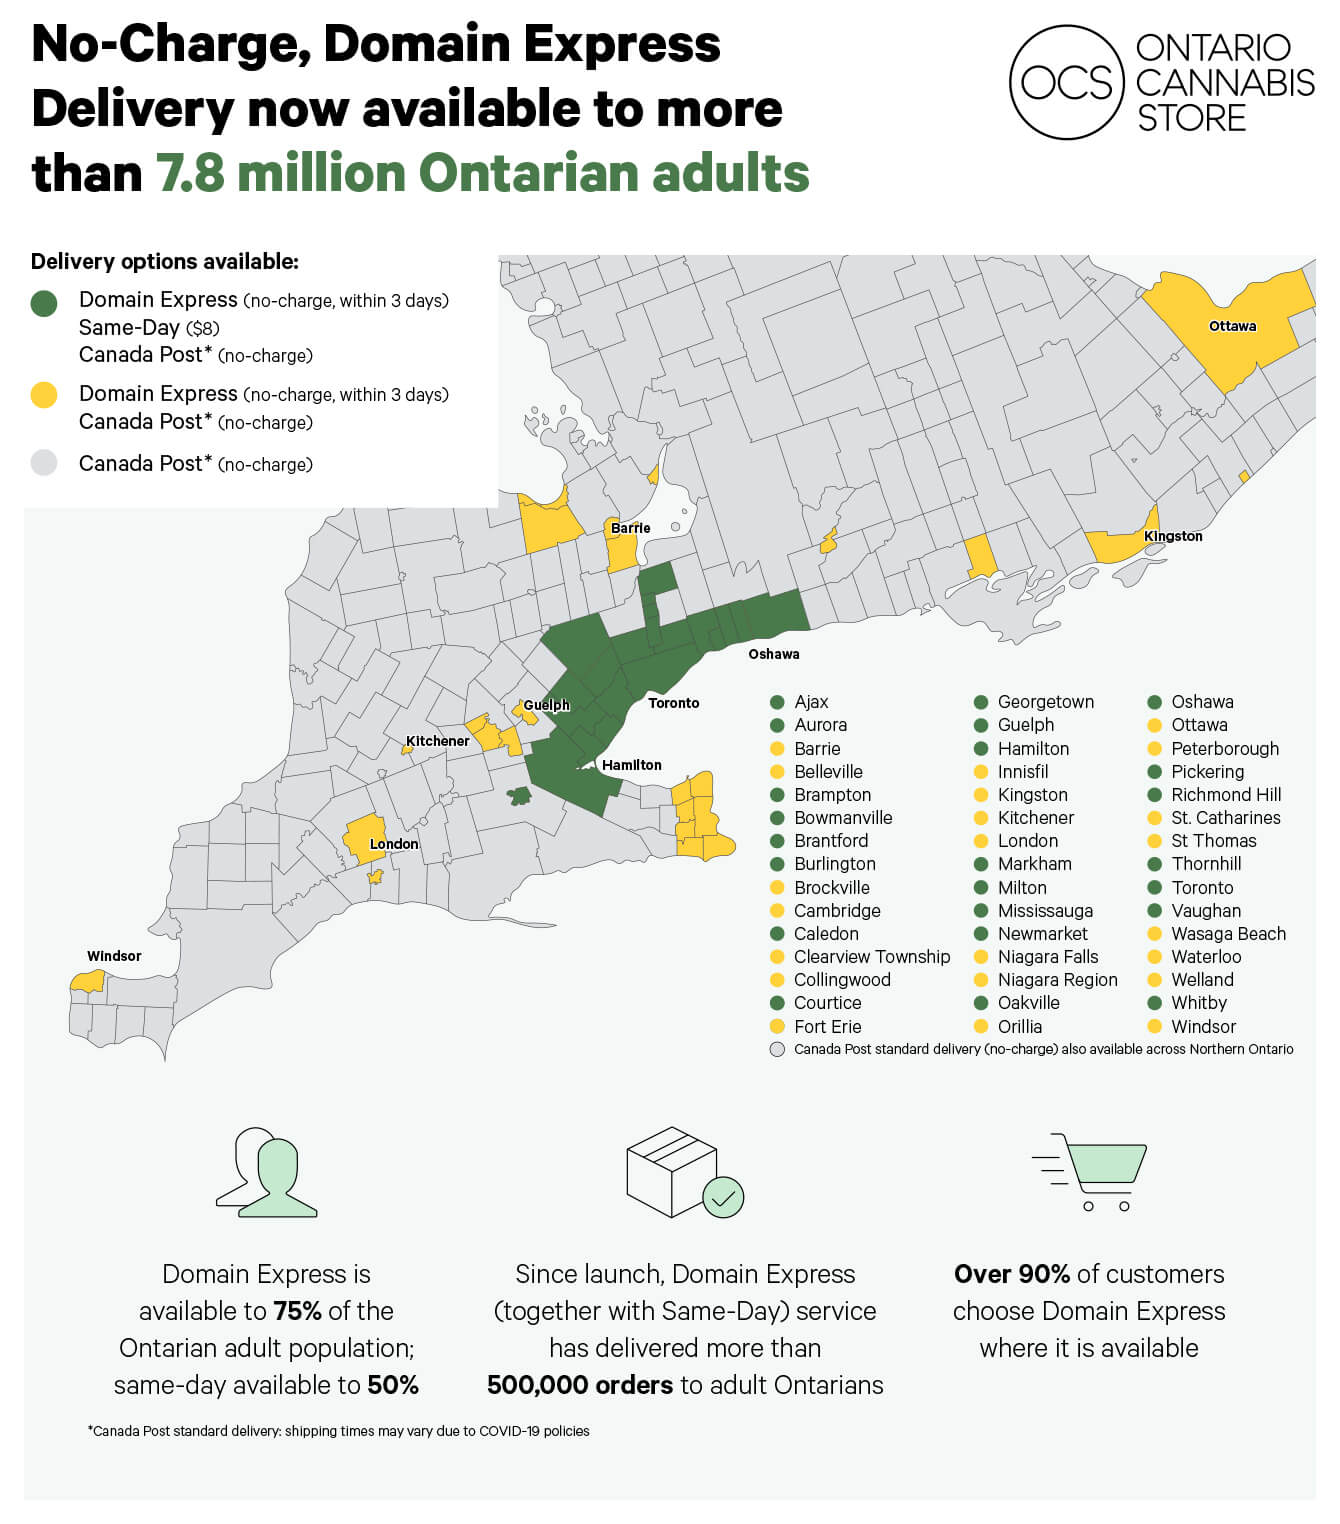 No-Charge, Domain Express Delivery now available to more than 7.8 million Ontarian adults